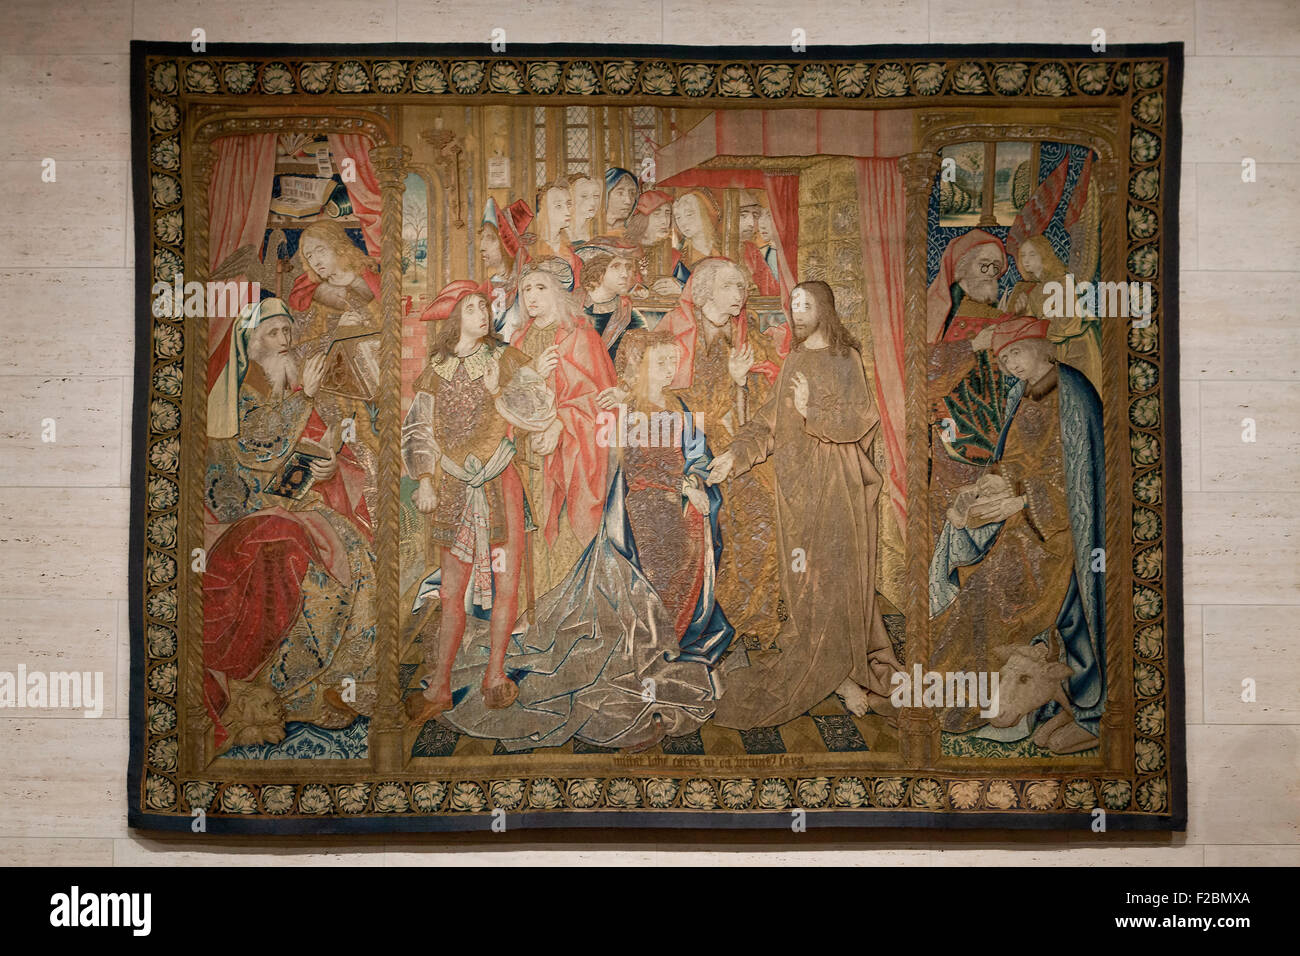 Christ and the Woman Taken in Adultery, Netherlandish, wool tapestry, circa 1500 - Stock Image